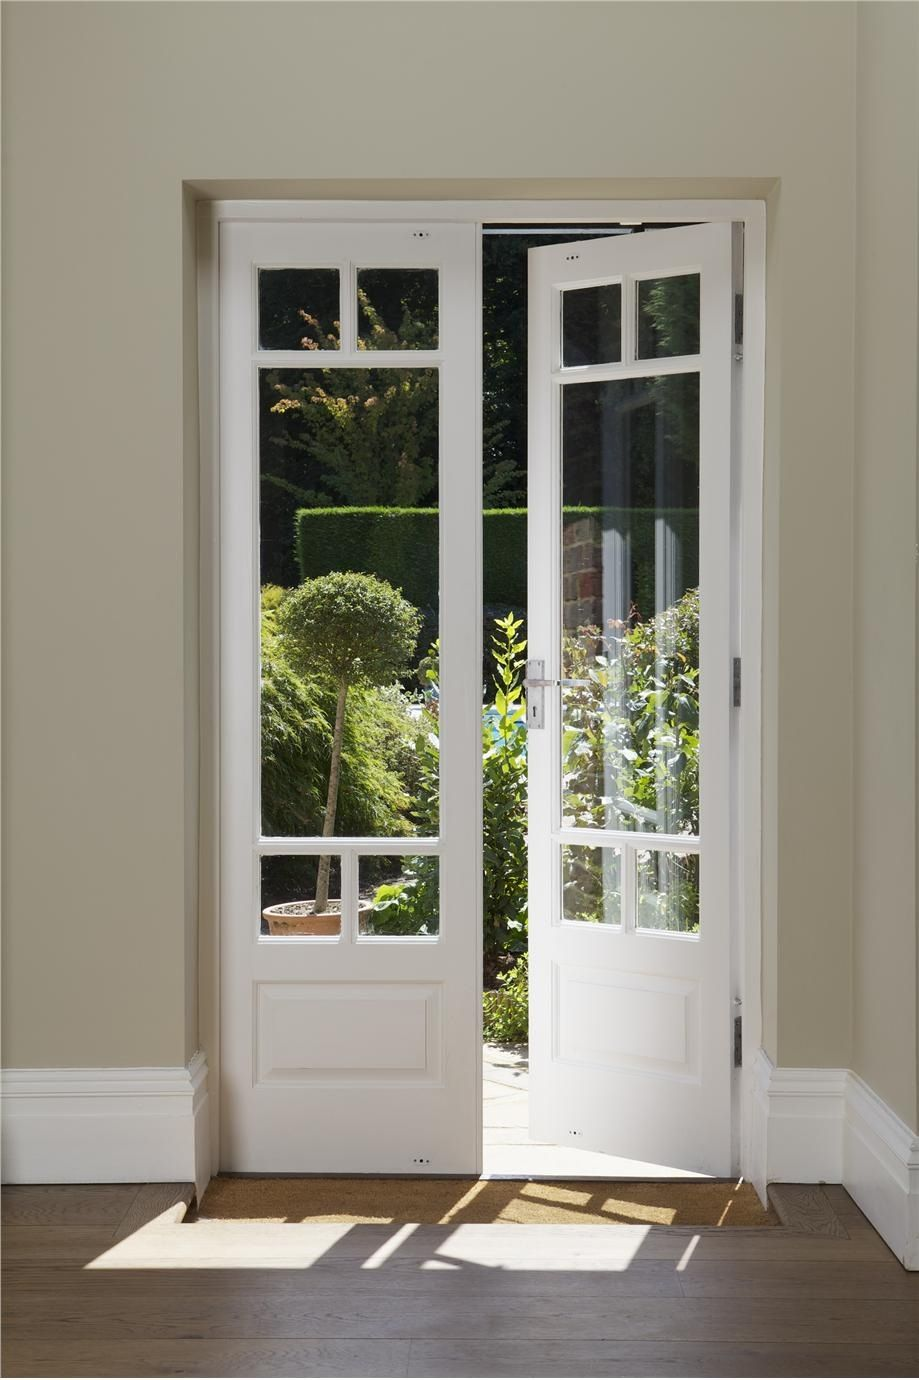 A01da975489e0d6738bddcf934918513g 9191380 decorating ideas white french doors farrow and ball walls in clunch trim in pointing rubansaba